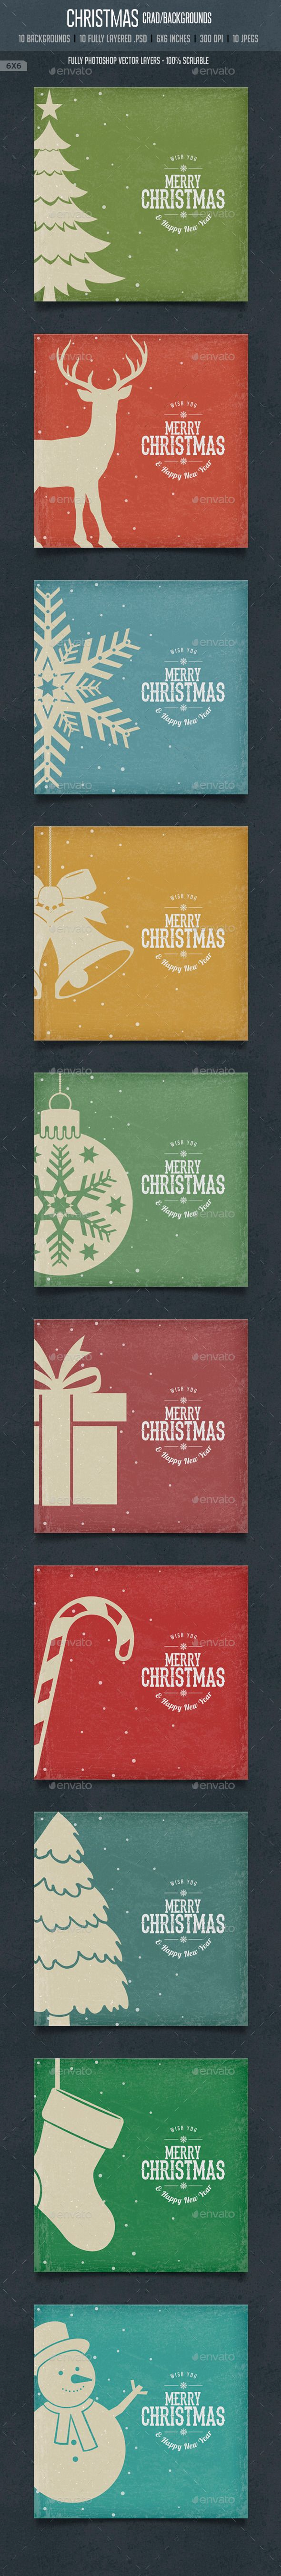 Vintage Christmas Square Cards / Backgrounds — Photoshop PSD #christmas gift #wall paper • Available here → https://graphicriver.net/item/vintage-christmas-square-cards-backgrounds/9602298?ref=pxcr